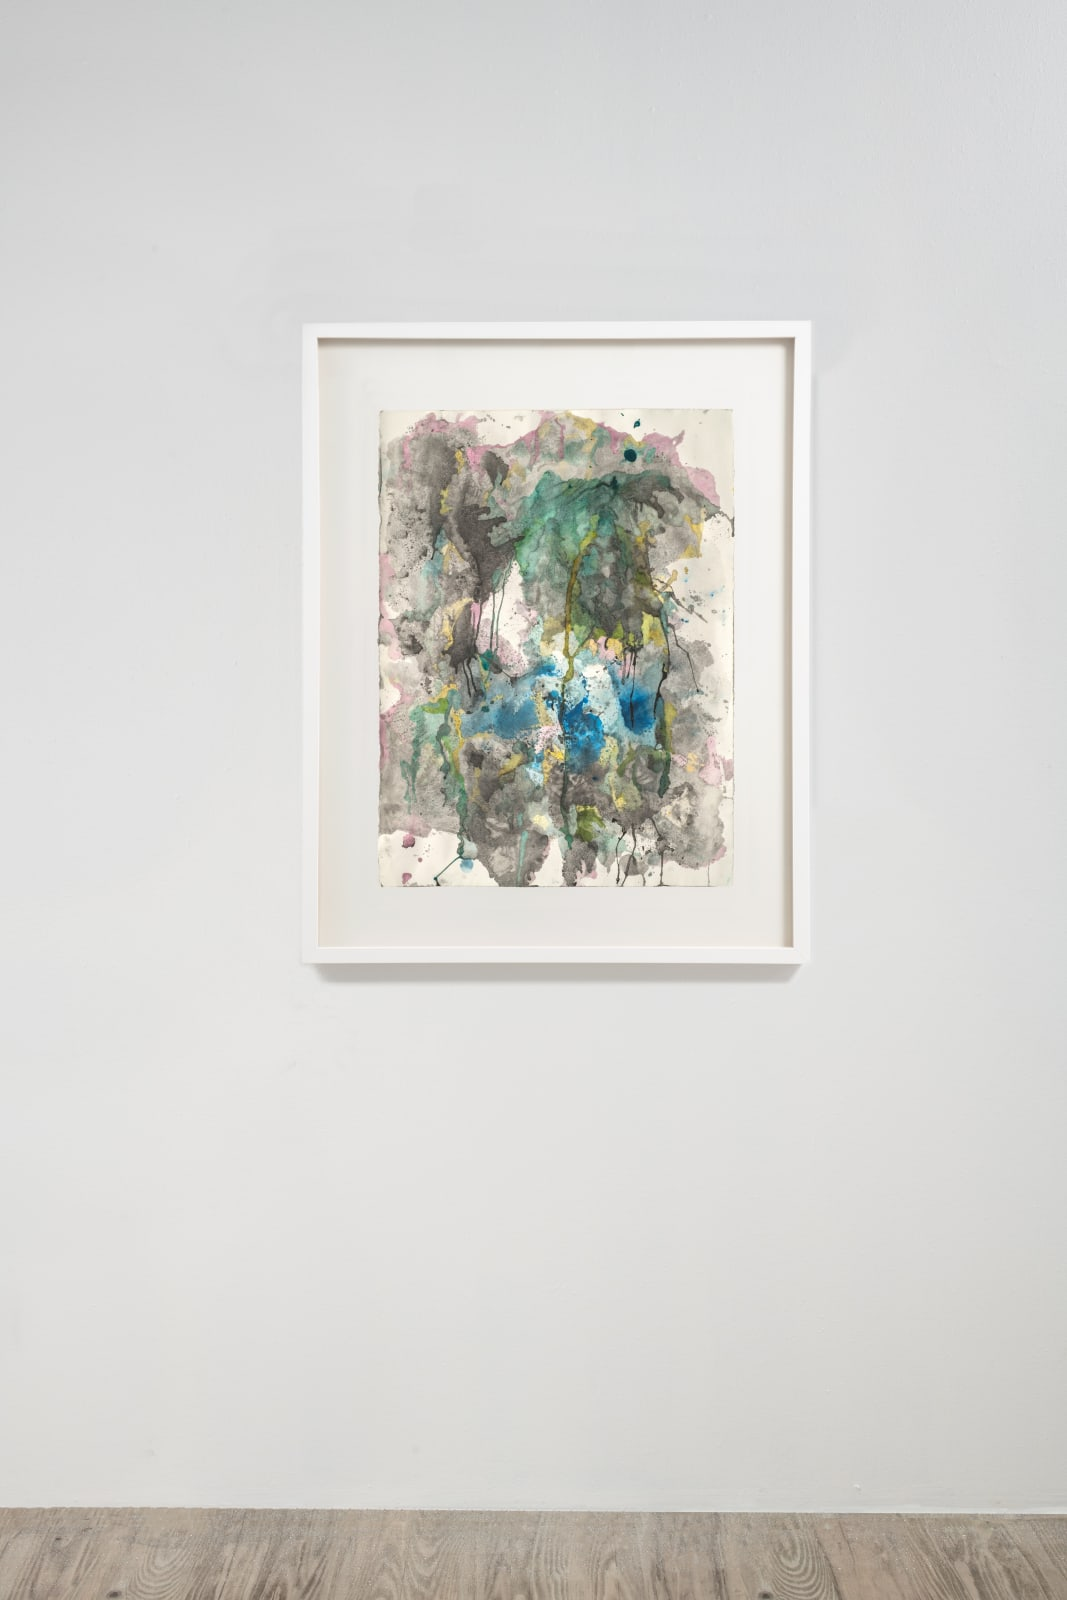 Michele Colburn Pendant Lui Un Déluge, 2020 Gunpowder and watercolors on Arches paper with deckled edges 76.2 x 55.9 cm, 30 x 22 in. (Frame not included) Photo: Lee Stalsworth